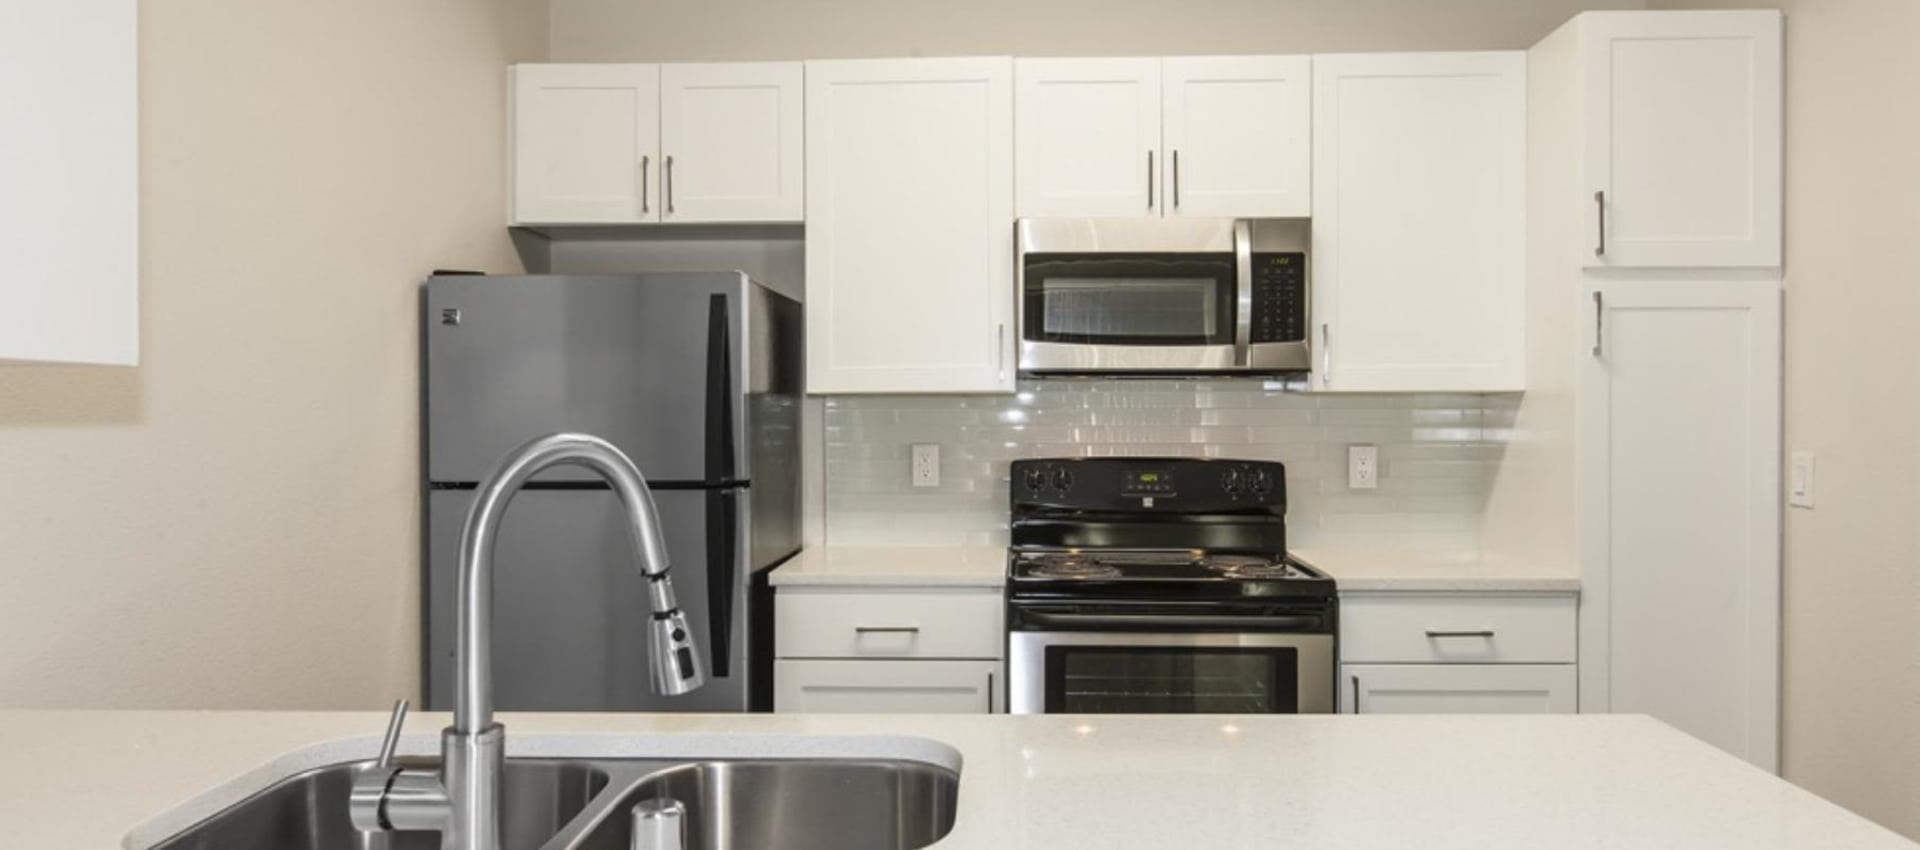 Stainless steel appliances at Park Central in Concord, California